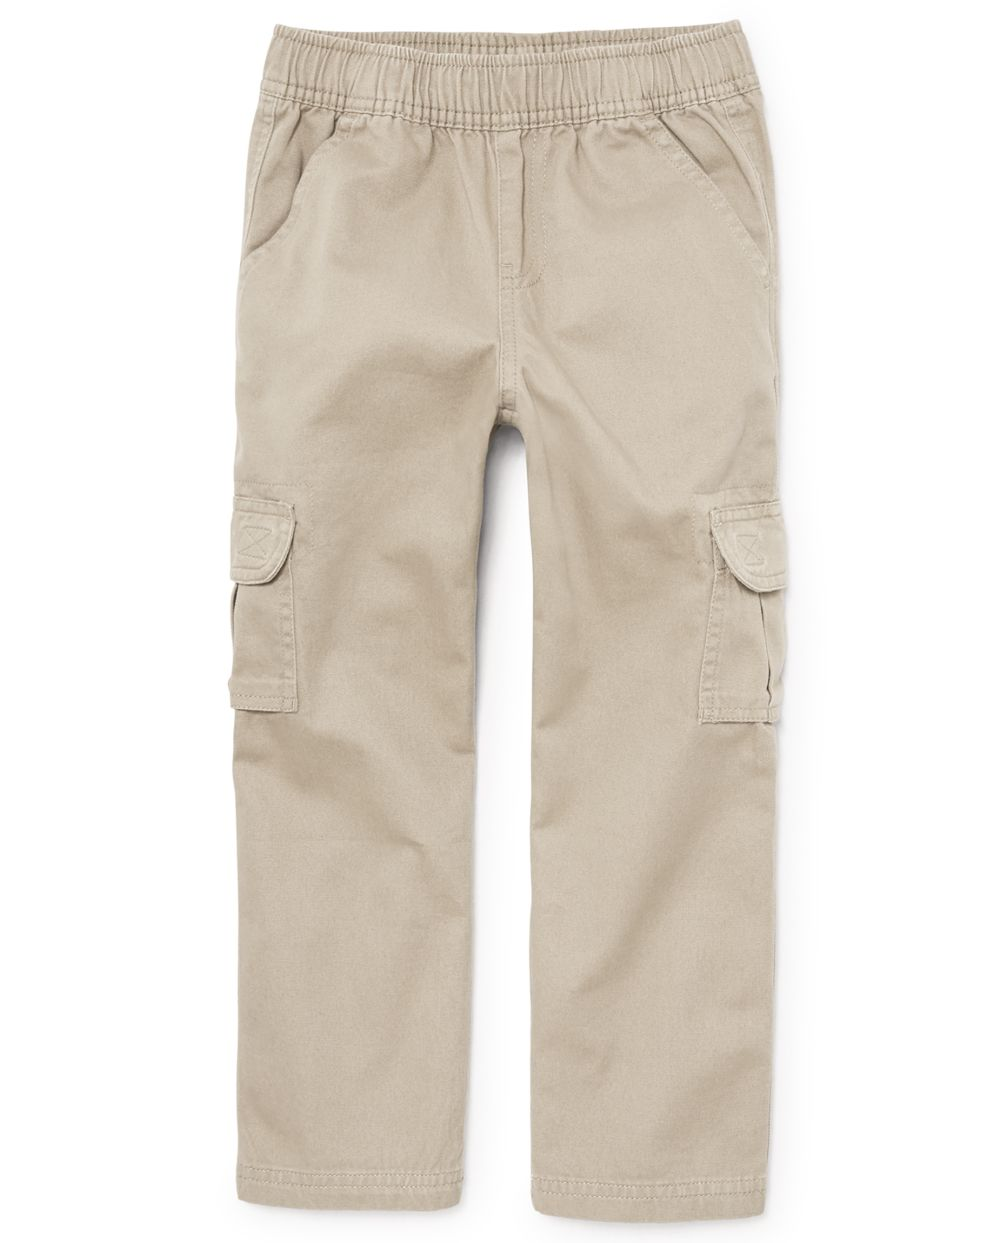 Boys Uniform Pull On Chino Cargo Pants